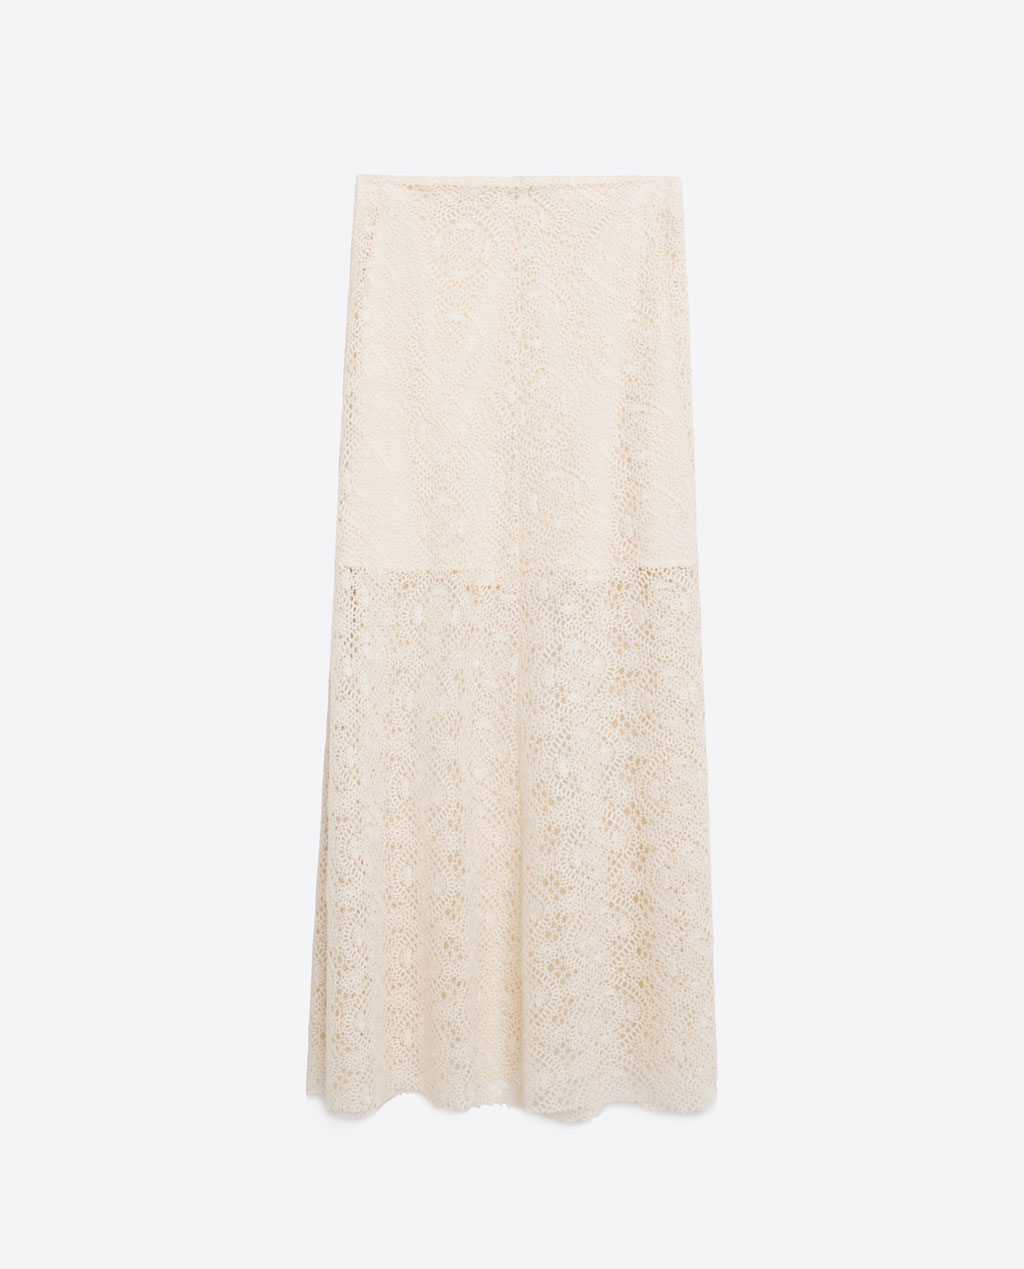 zara - LAYERED LACE MIDI SKIRT 49.99